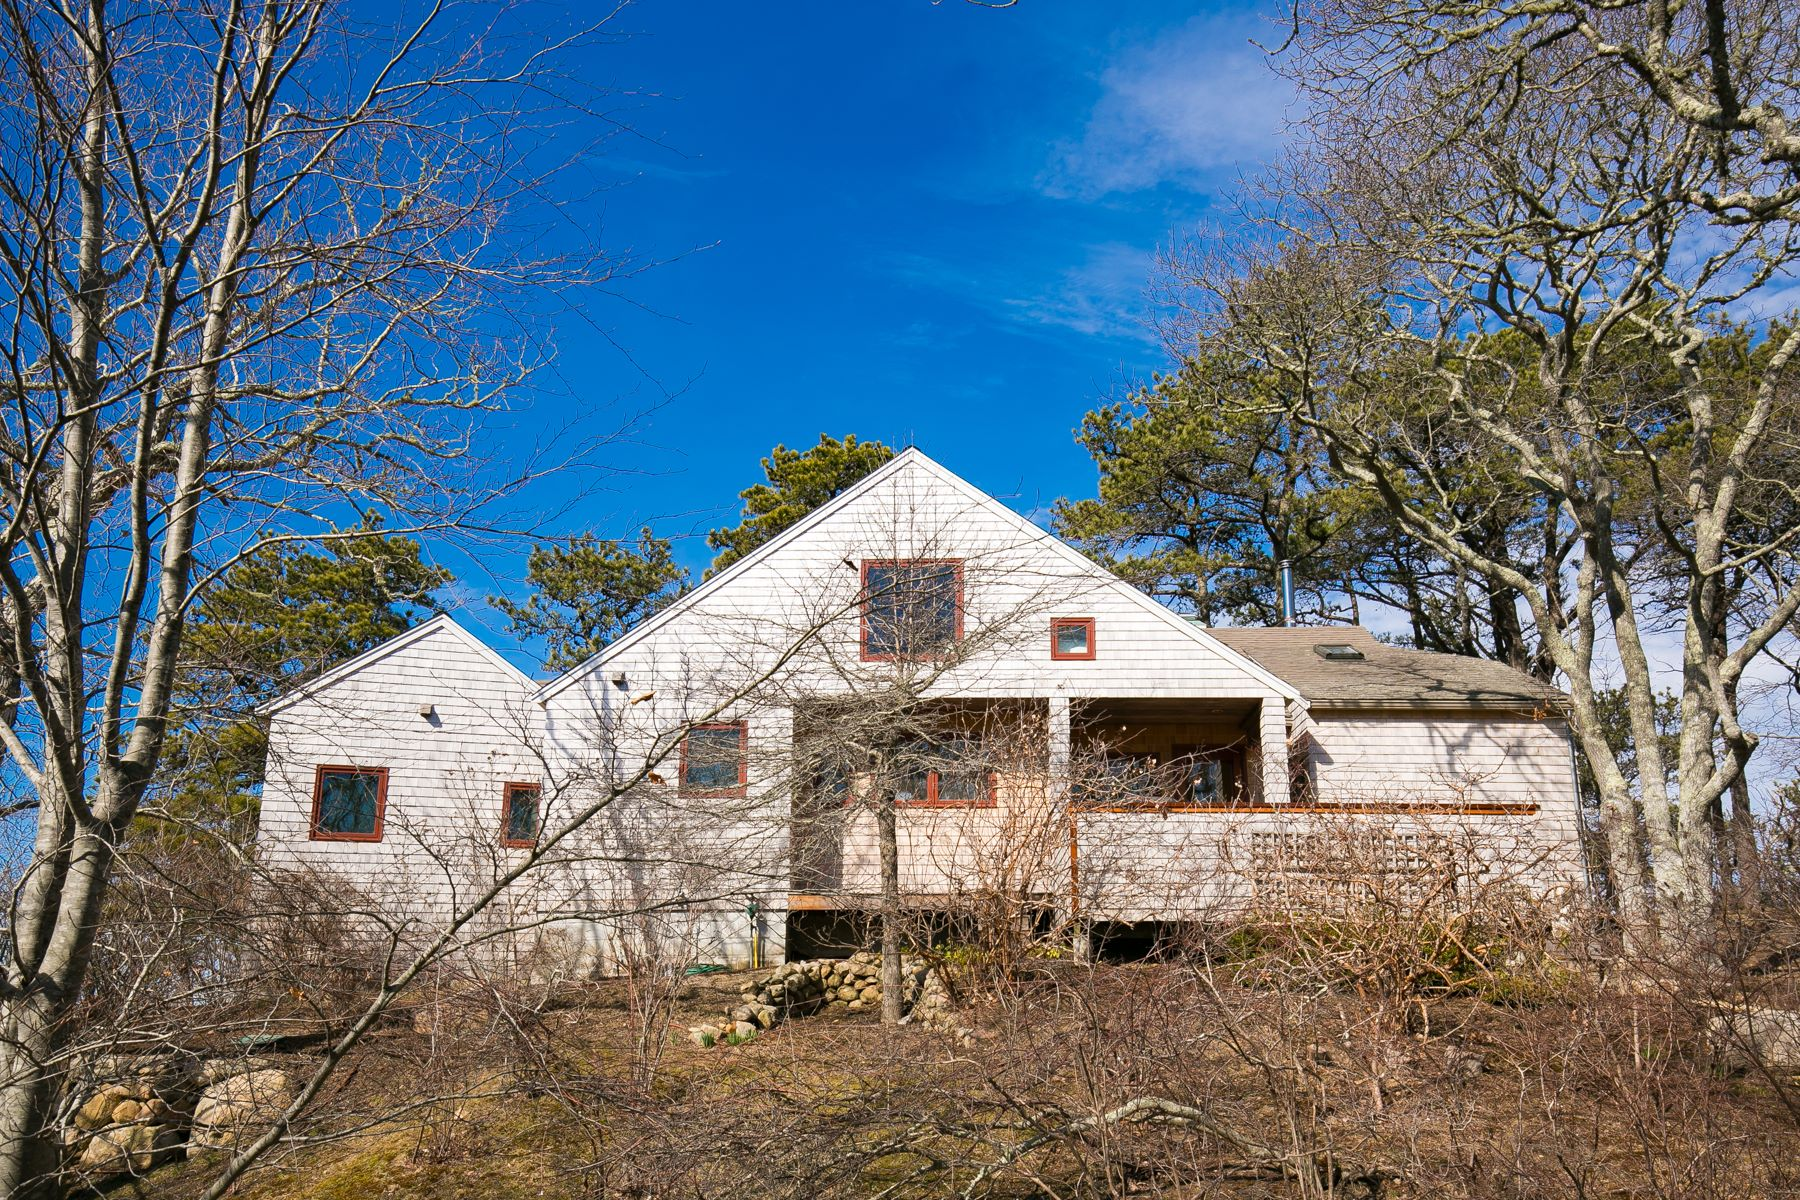 Casa Unifamiliar por un Venta en Inviting Chilmark Contemporary 72 Blueberry Ridge Lane Chilmark, Massachusetts 02535 Estados Unidos